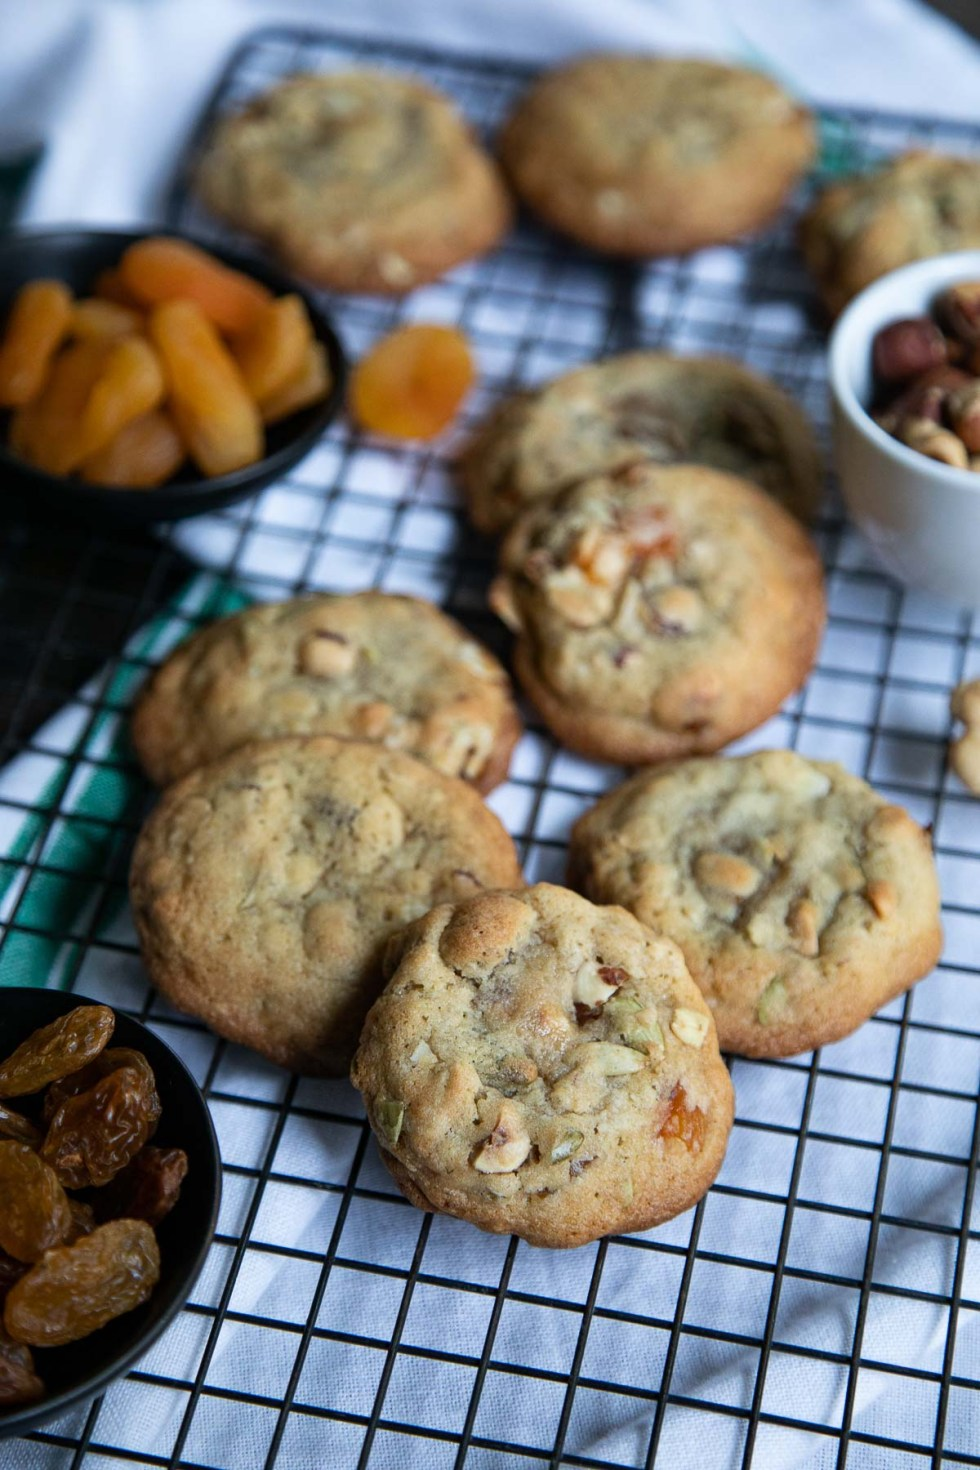 Homemade Muesli Cookies on Drying Rack